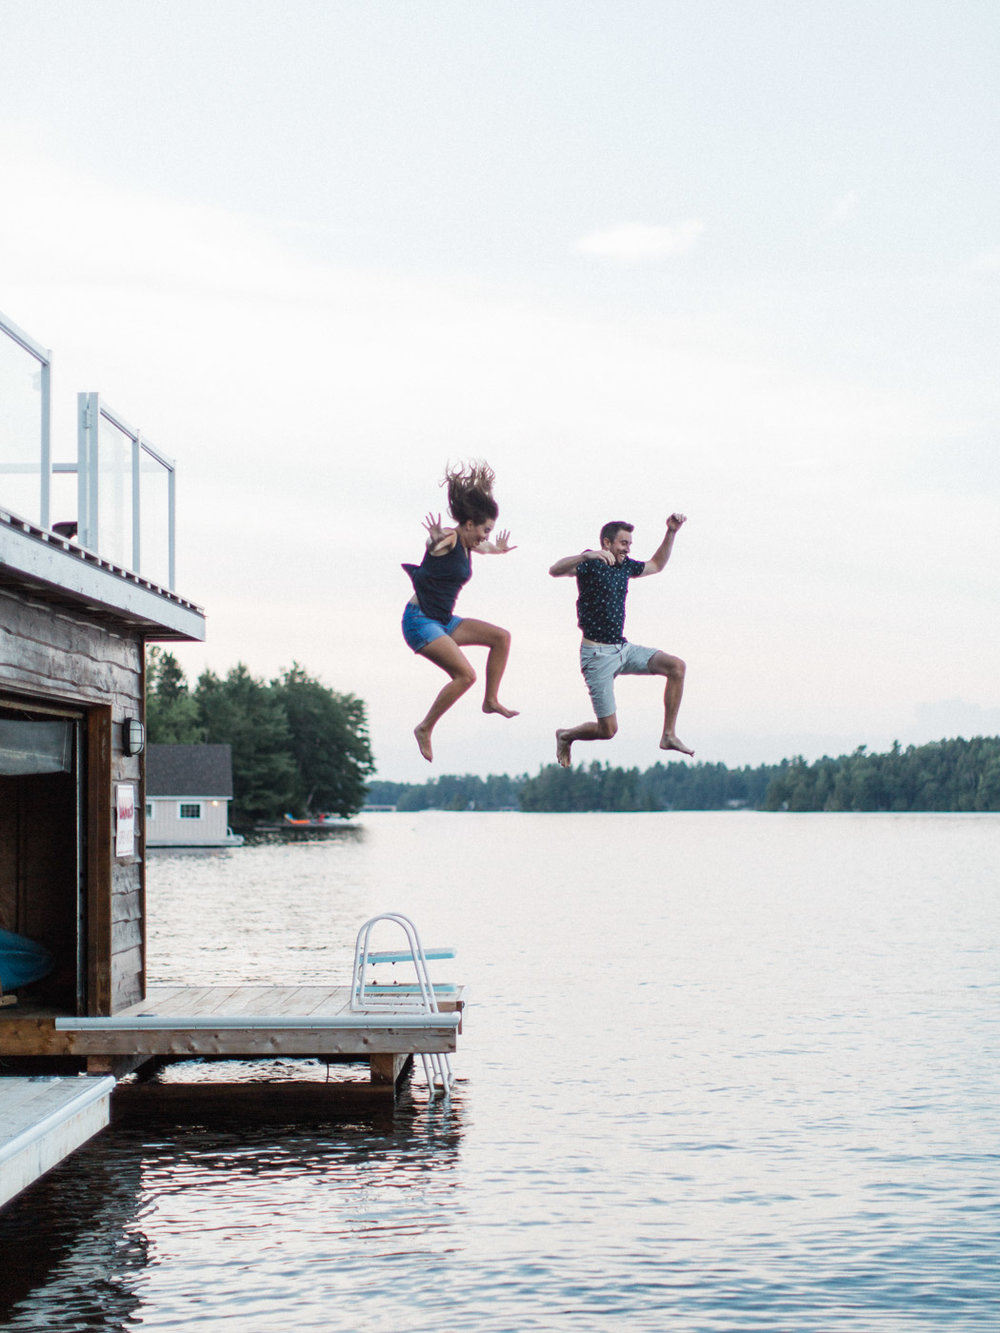 muskoka-wedding-photographer-adventurous-couples-engagement-session-lake-110.jpg